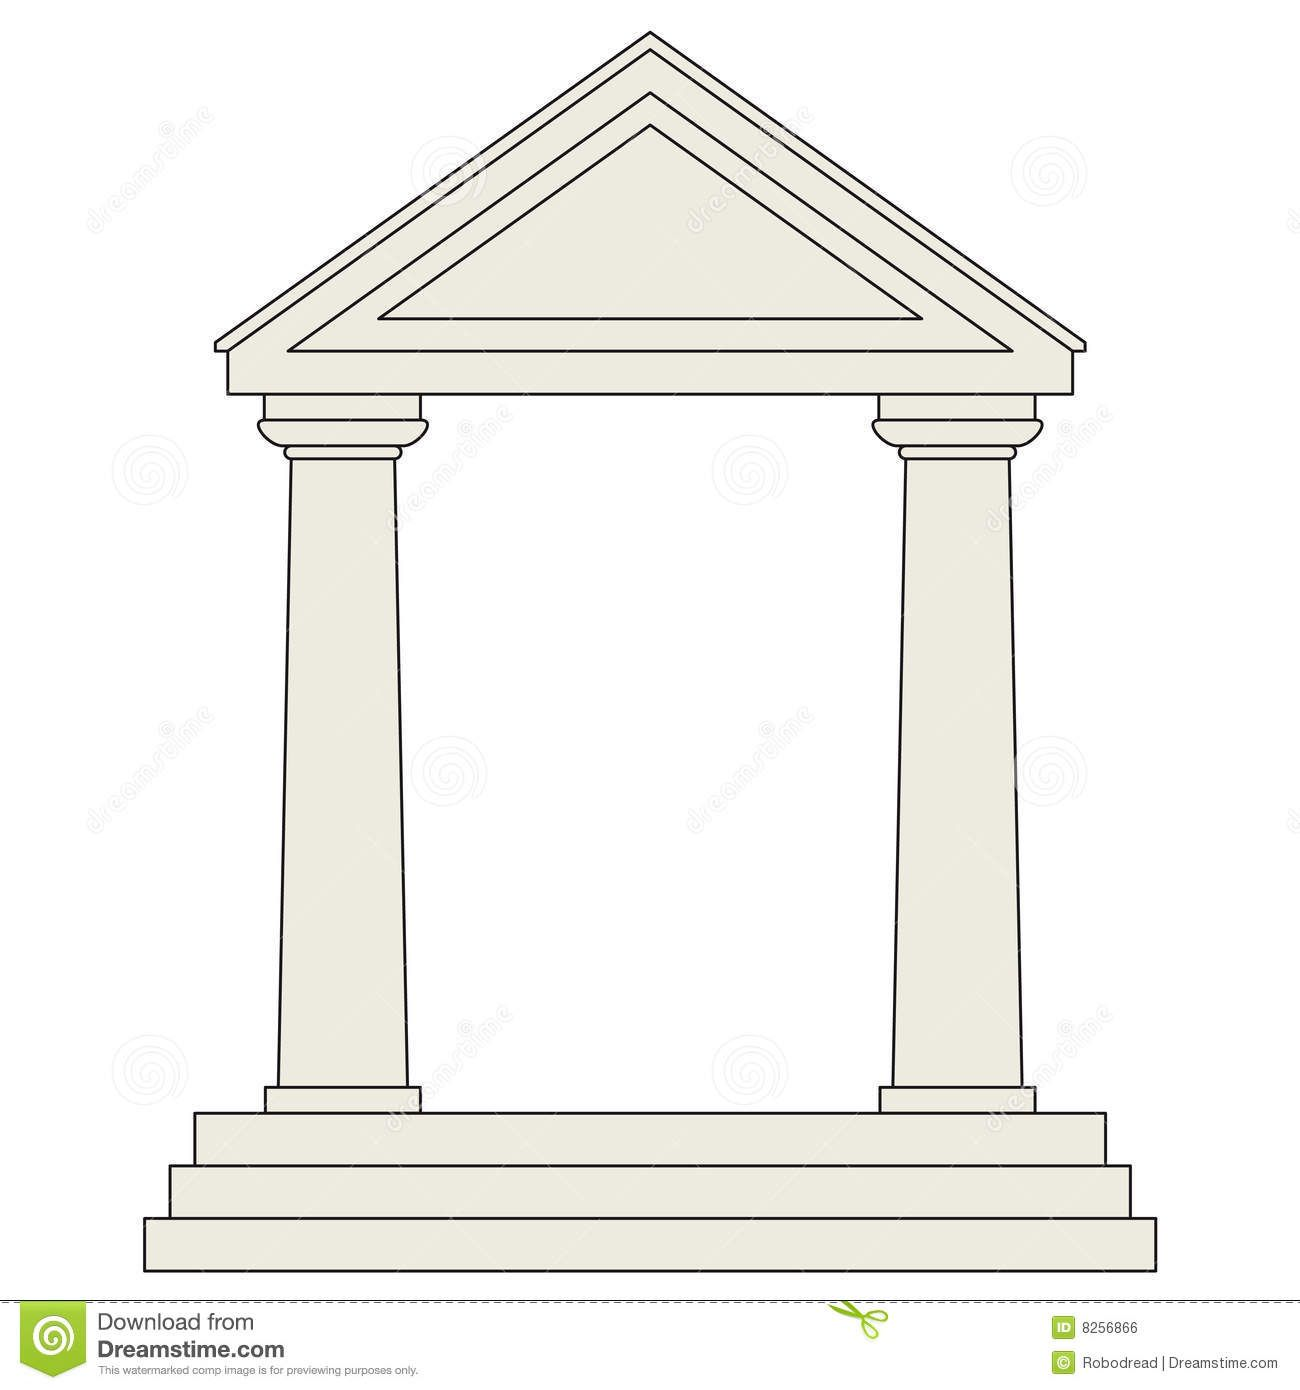 greek temples clipart.